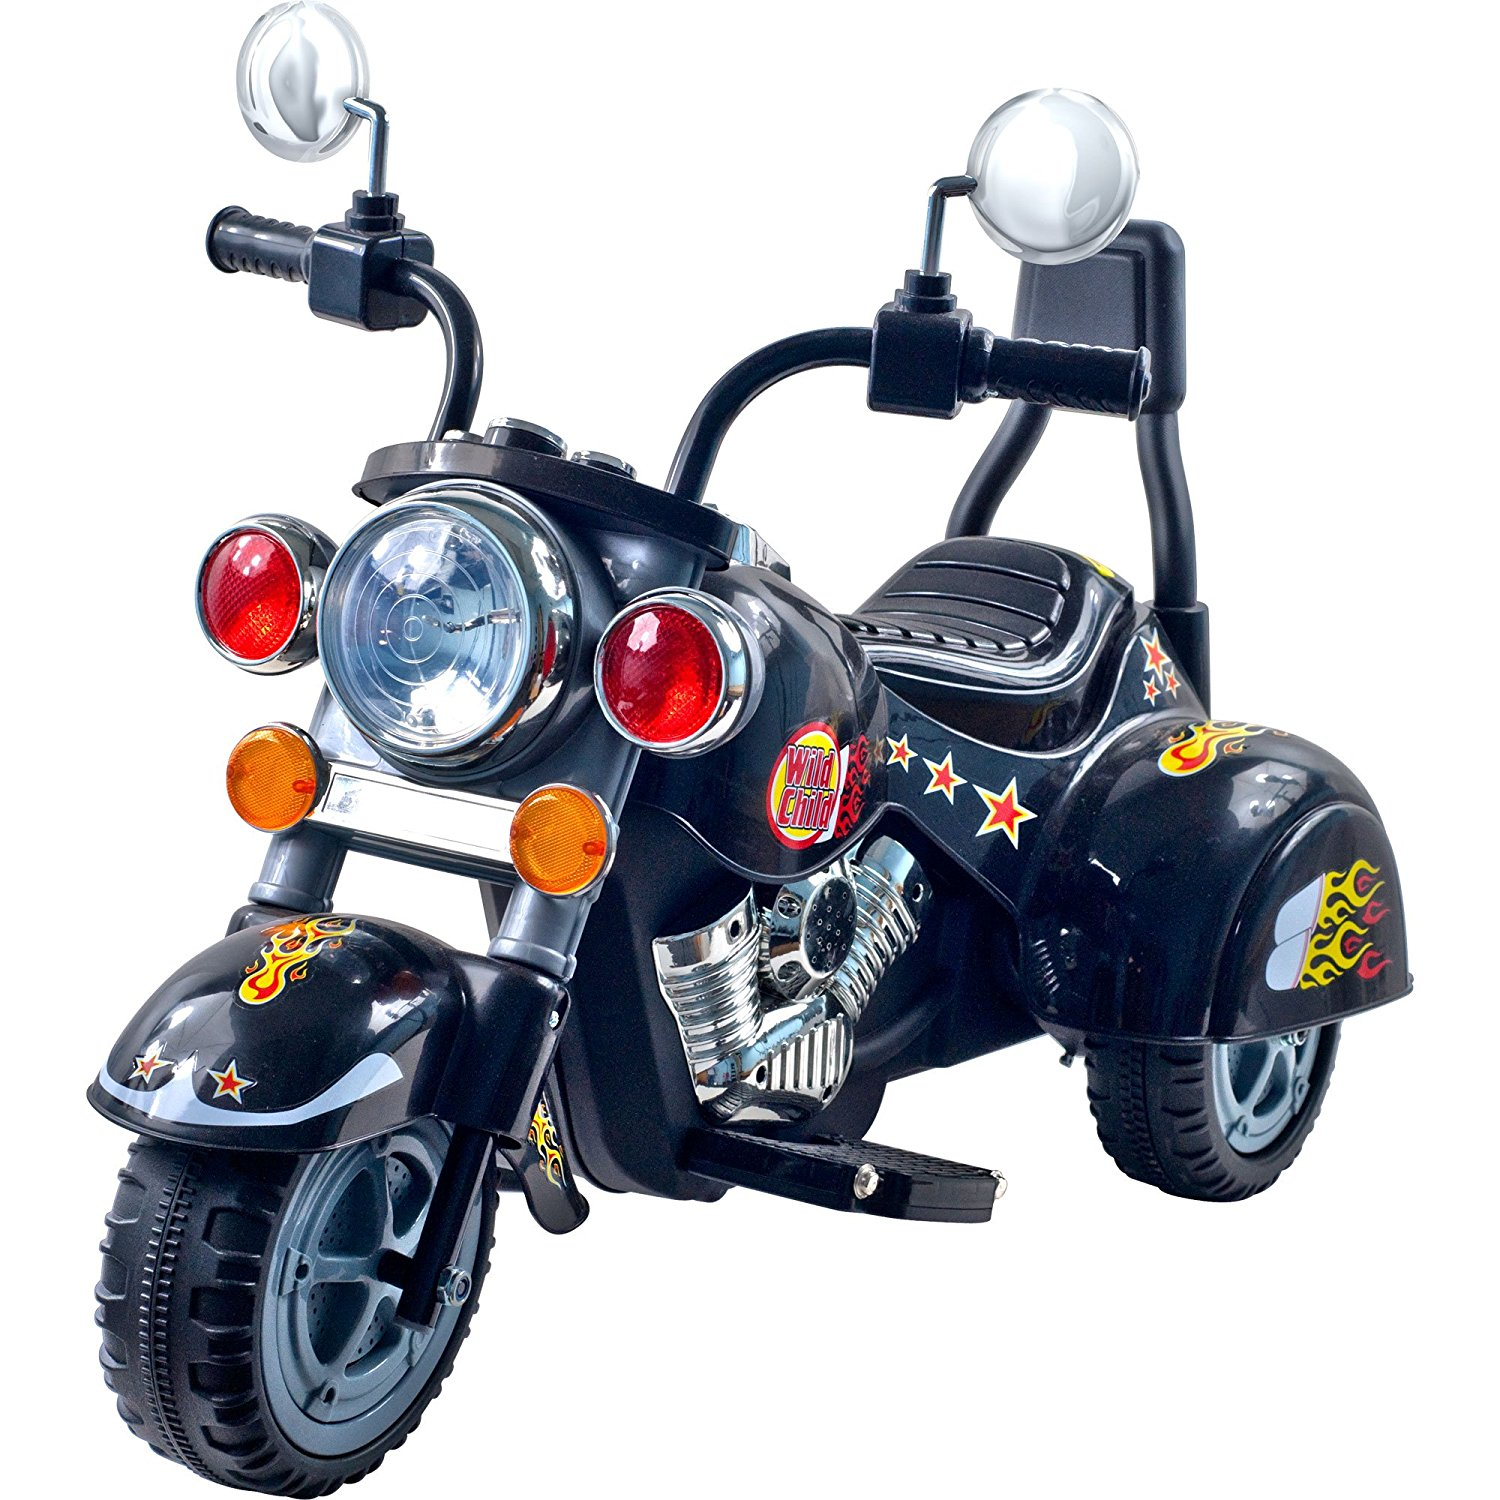 Electroni Remote Control Bike for Kids